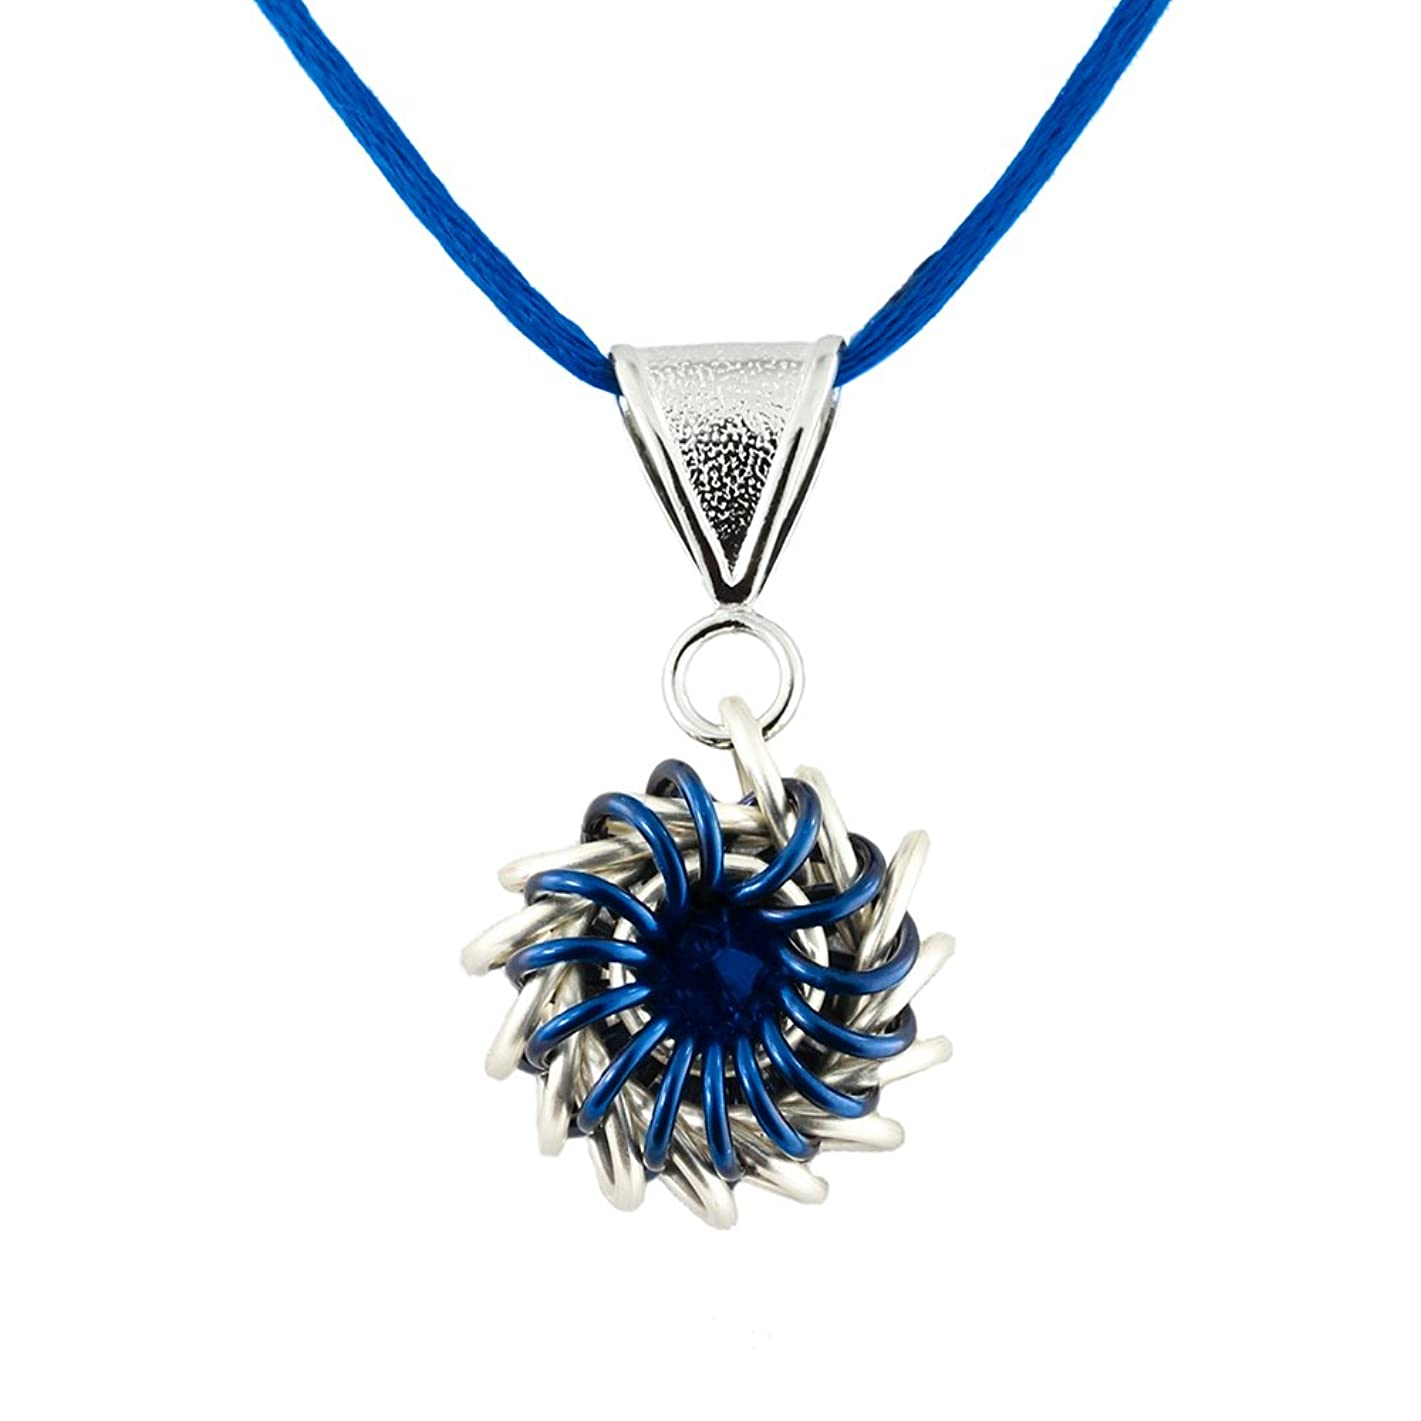 Weave Got Maille Blue Whirlybird Chain Maille Necklace Kit with Swarovski Crystal,